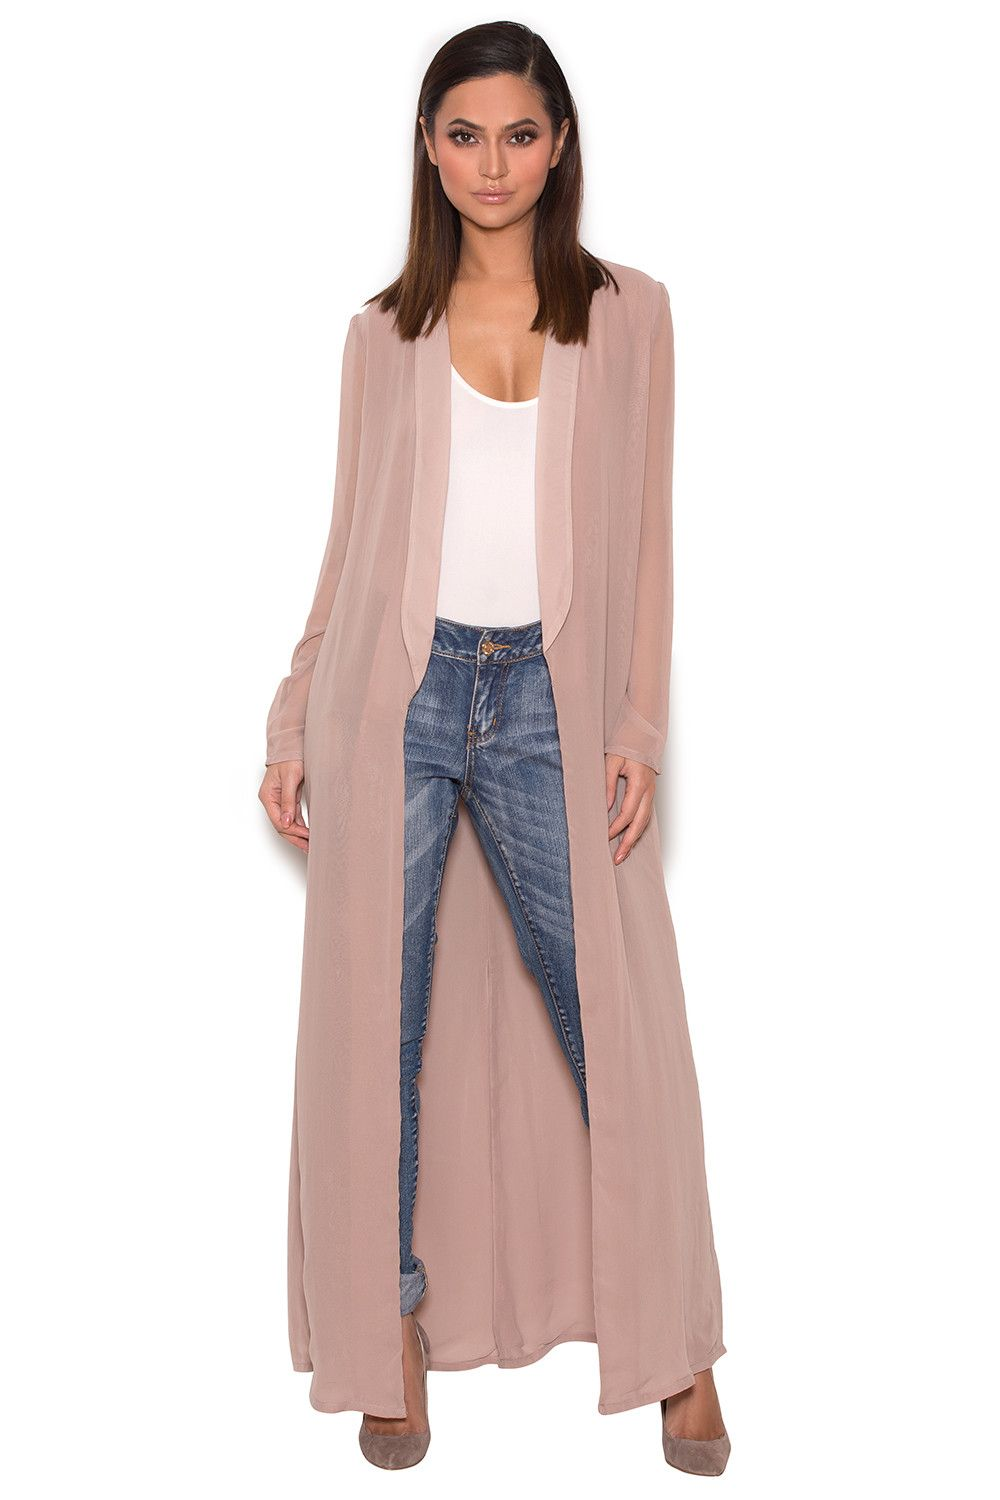 0e1495bf2913 Clothing   Jackets    Carlene  Taupe Sheer Chiffon Duster Coat More